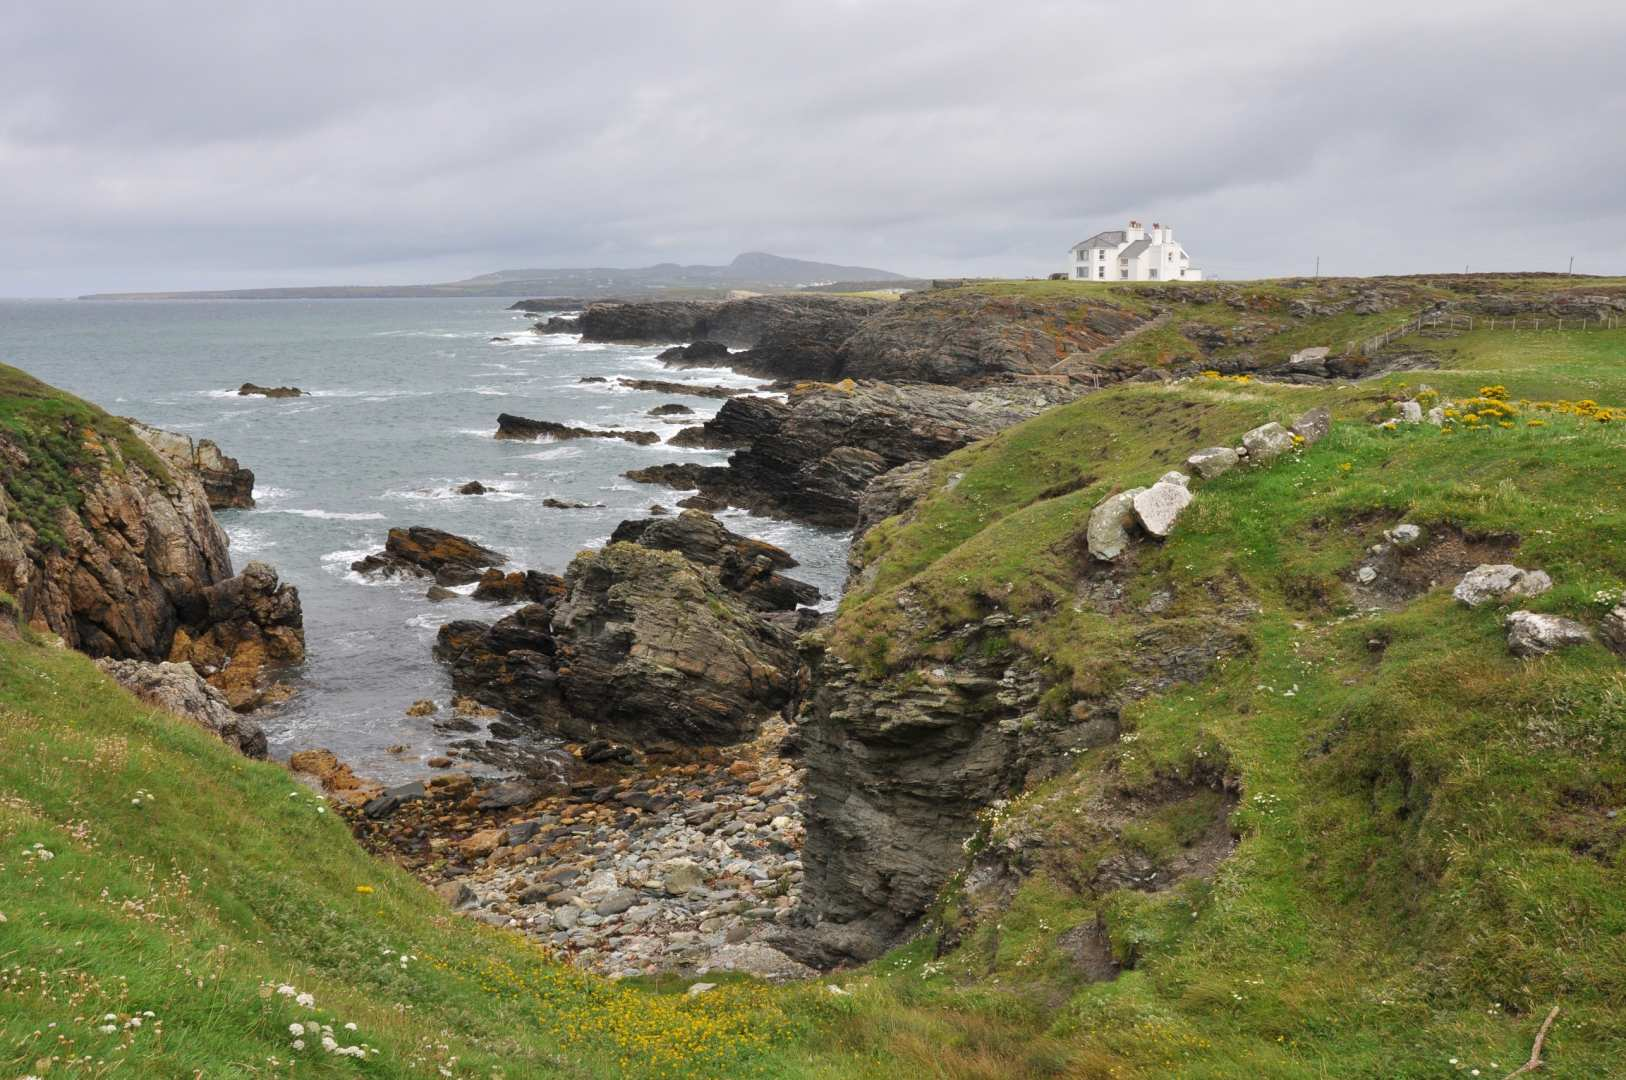 Ferry To Ireland From Holyhead >> Isle of Anglesey Coast Path — Contours Walking Holidays